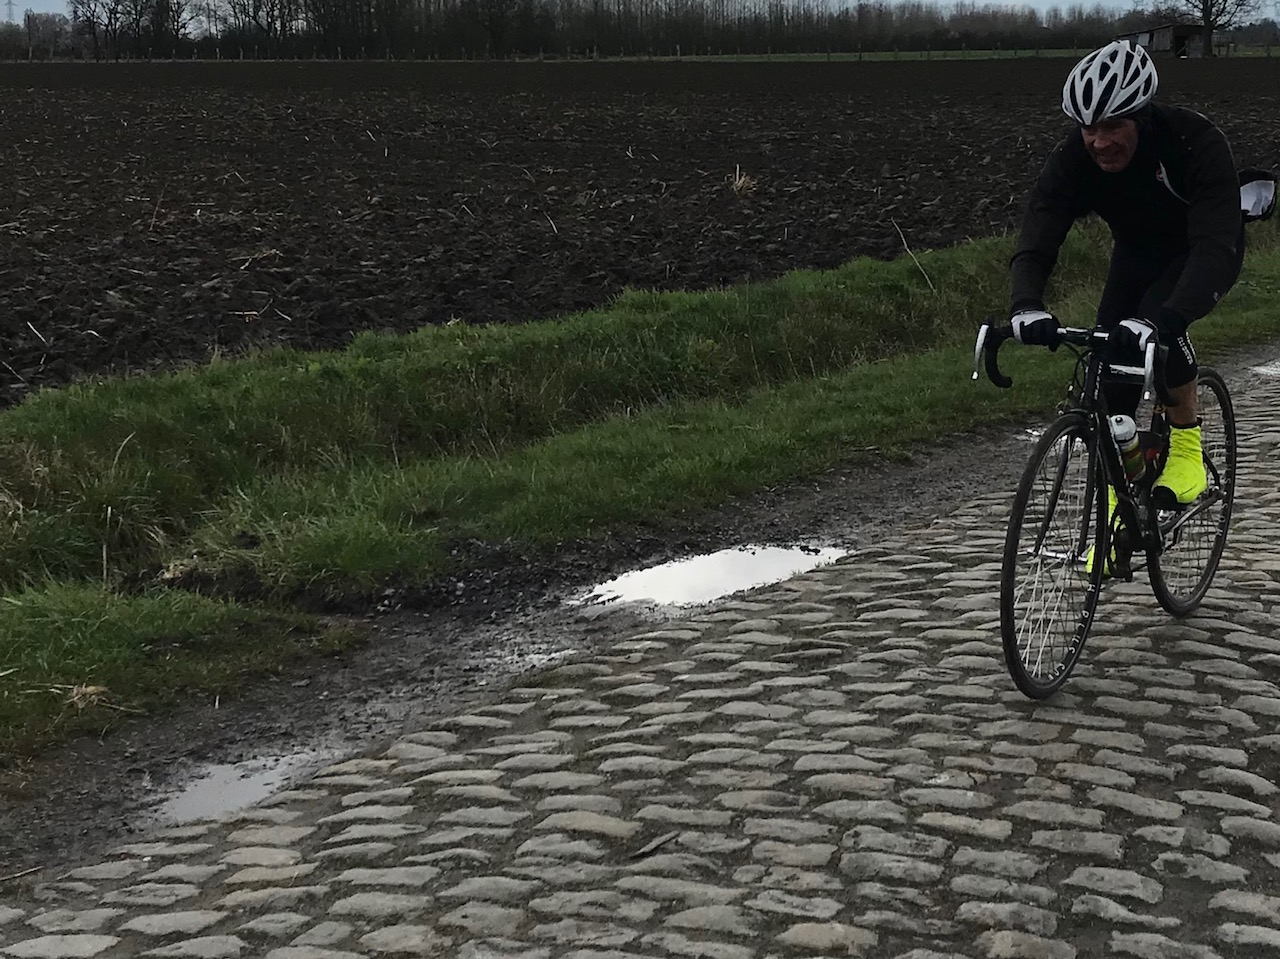 Mike Lawson (BiciSport) pictured above swaps the roads of Paris Roubaix 2018 for Tuscany gravel at the Eroica Challenge near Siena on 9 March